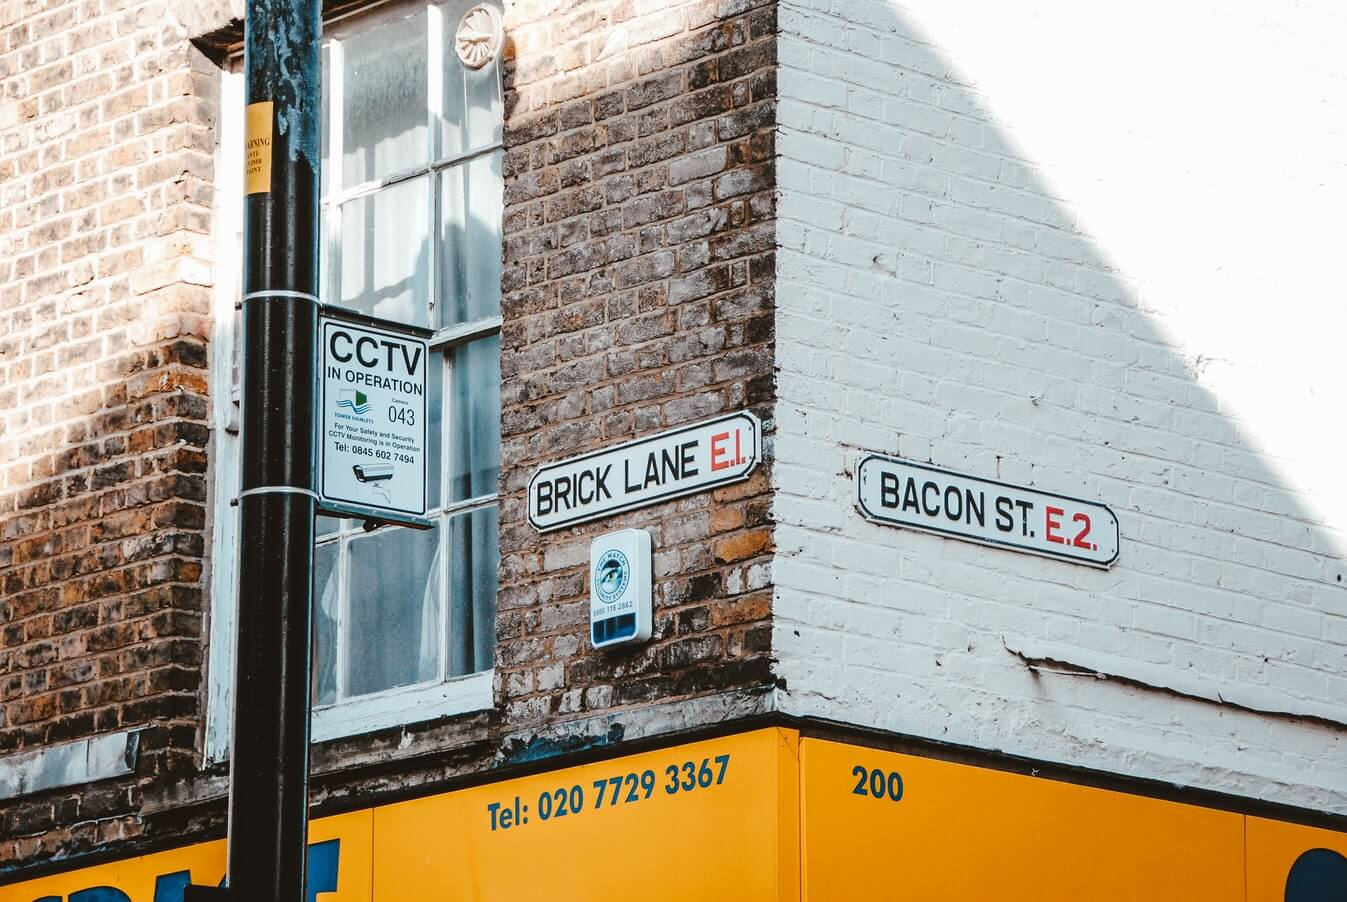 Street sign for Brick Lane in Shoreditch